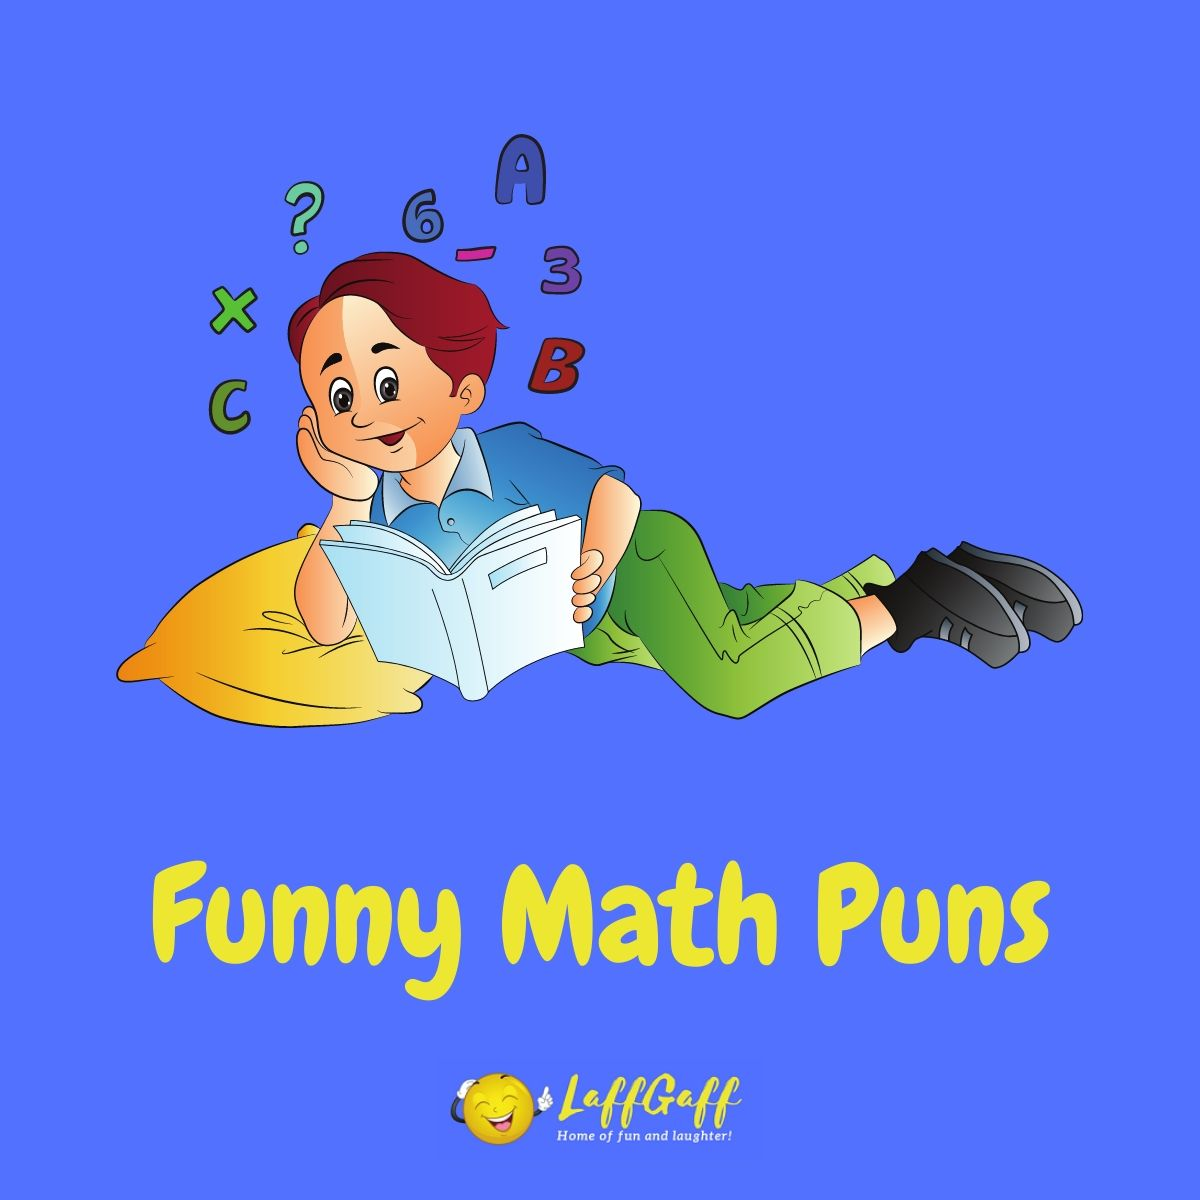 Featured image for a page of funny math puns.